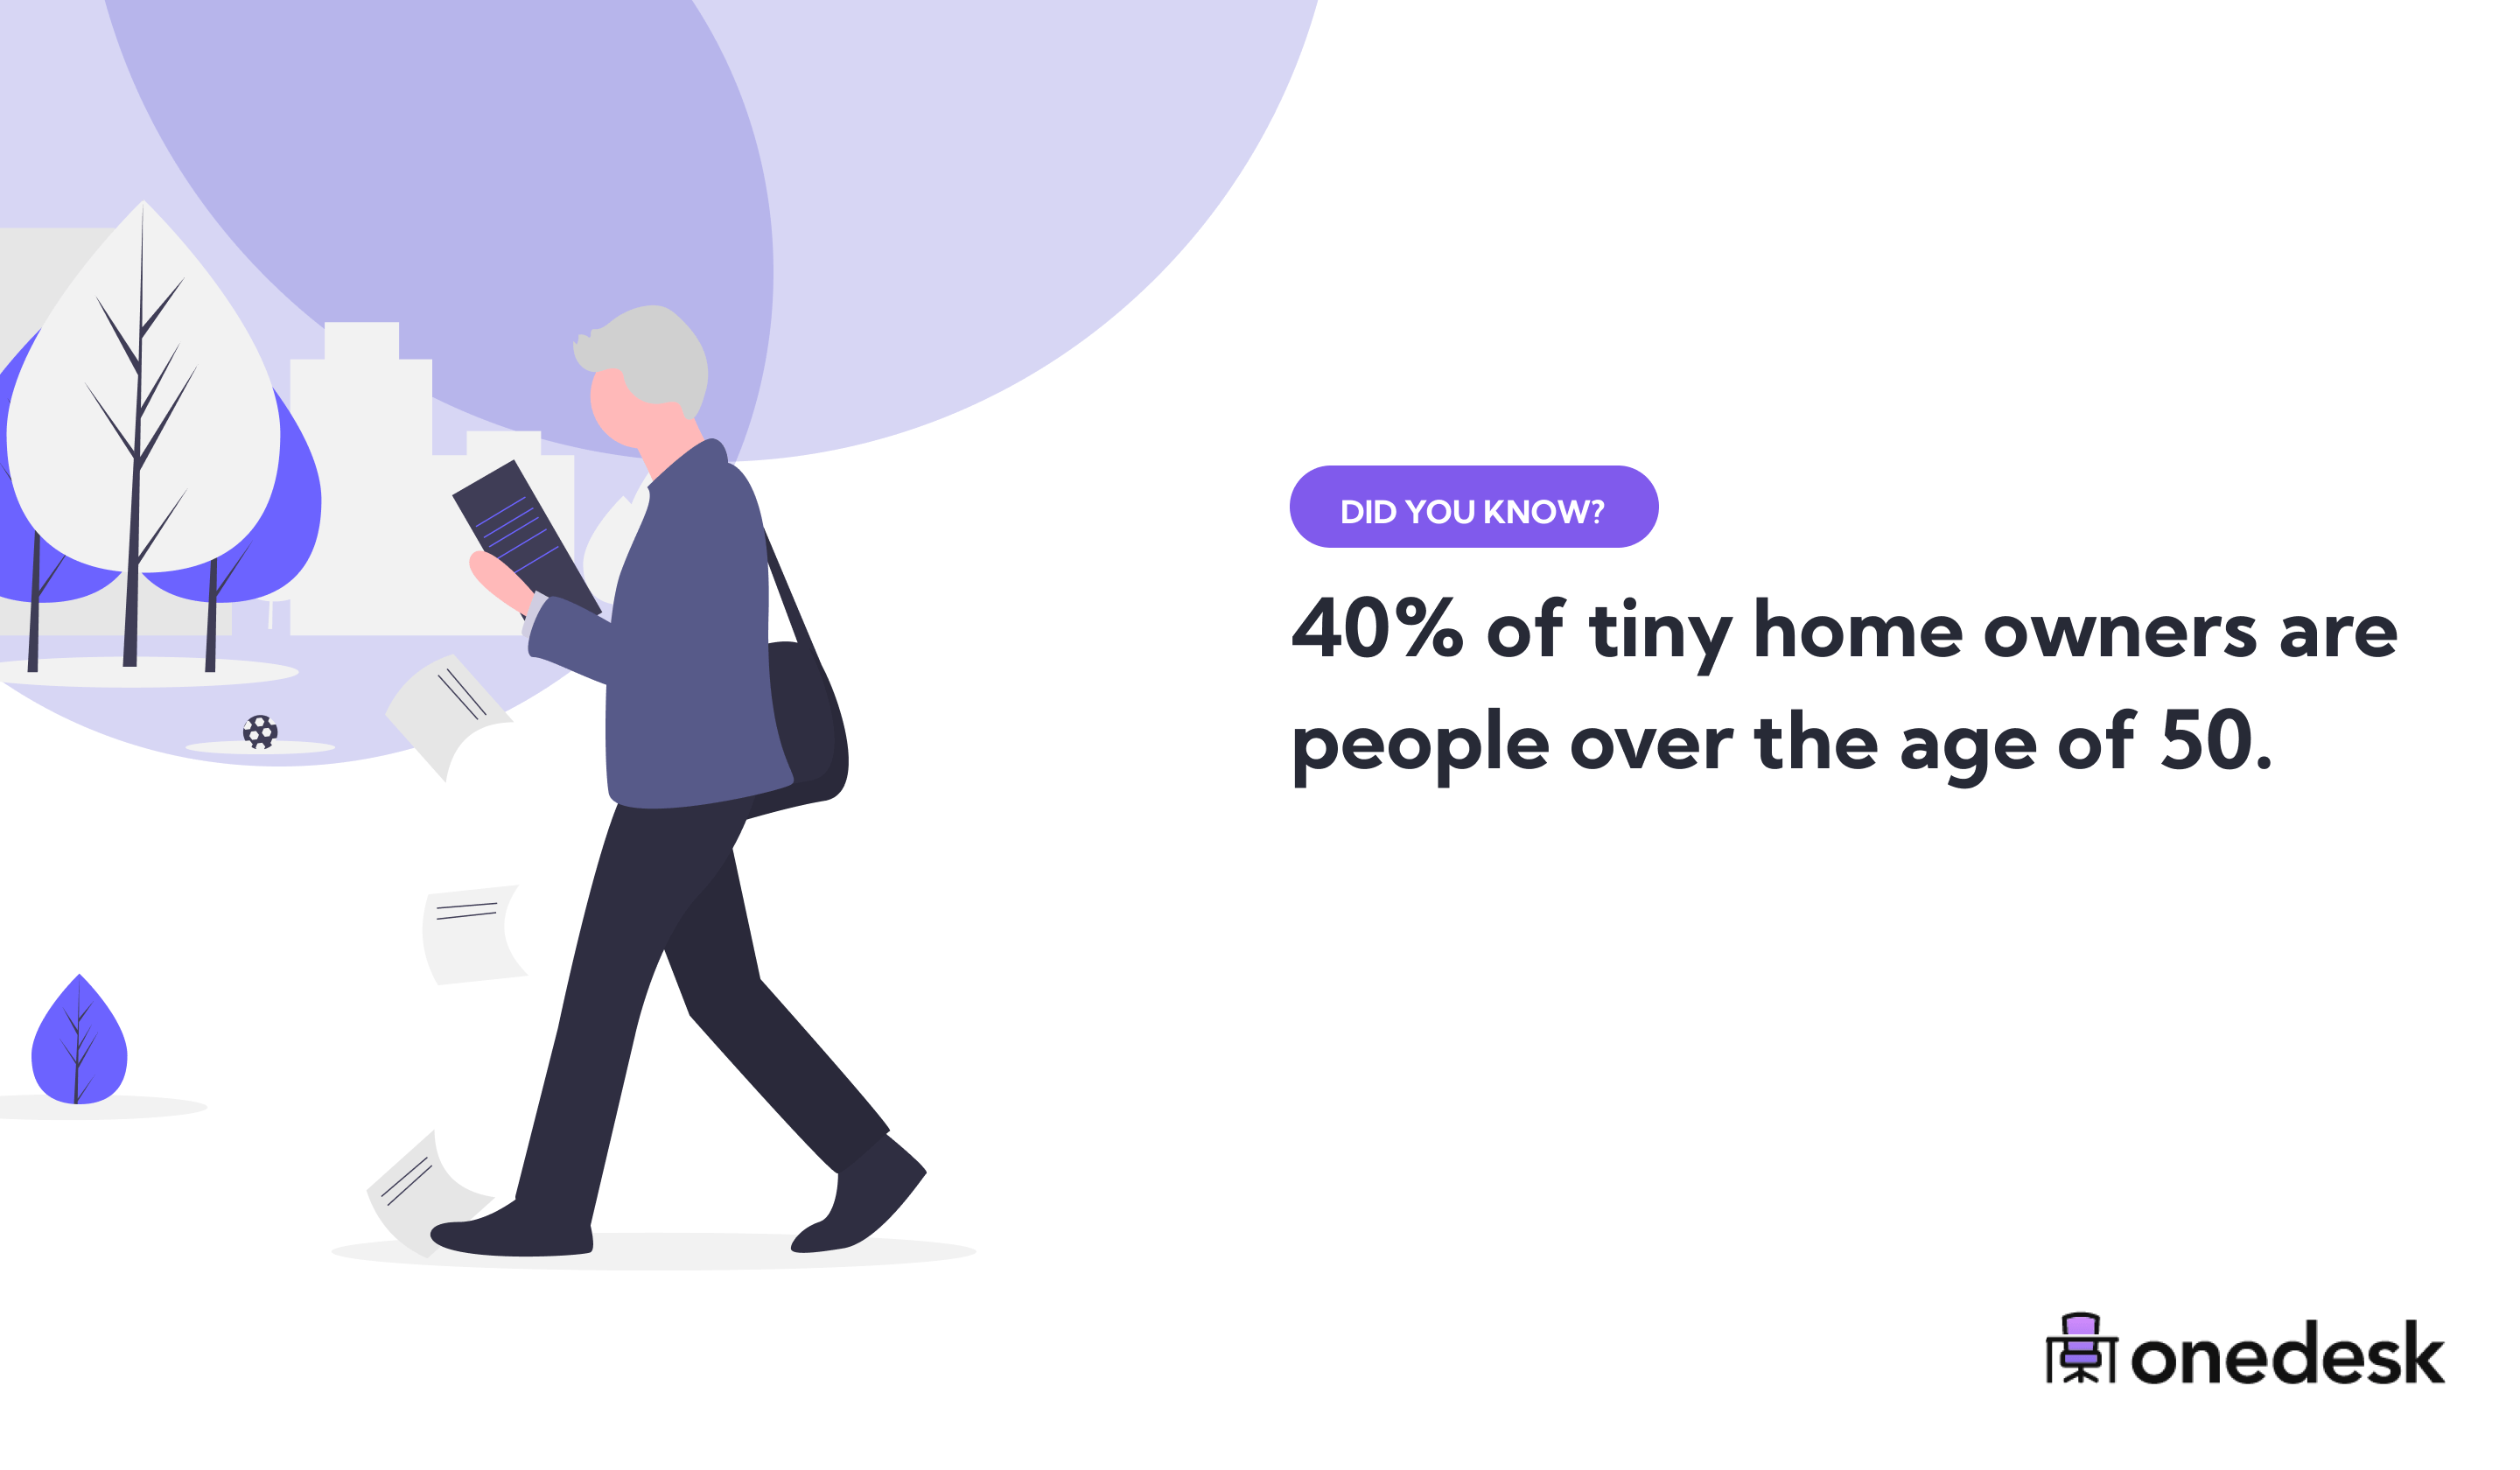 almost half of tiny home owners are older than 50